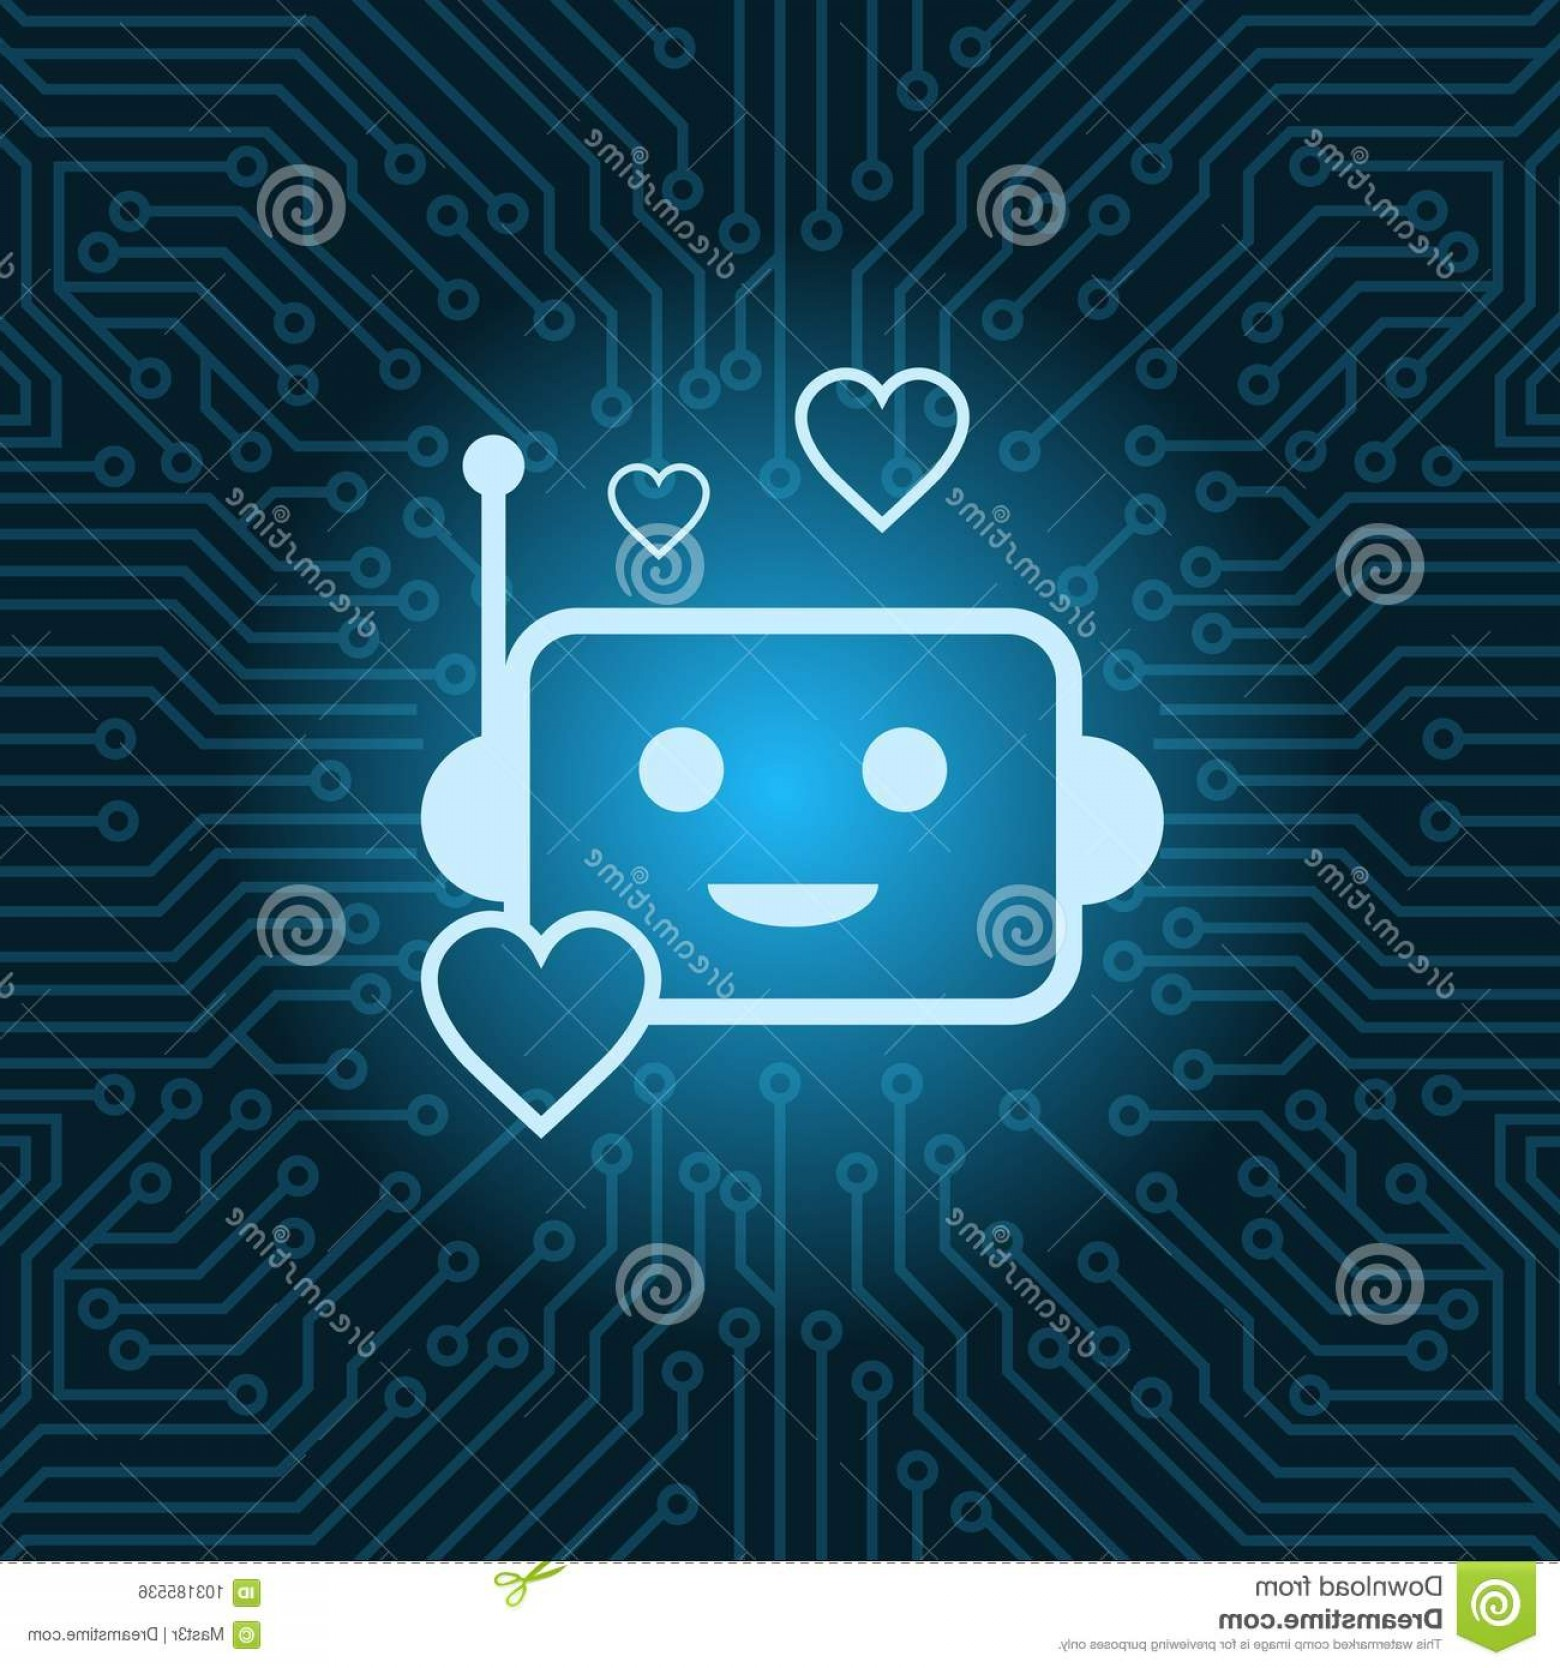 Motherboard Vector With A Heart: Chat Bot Face Icon Heart Shape Robot Over Blue Circuit Motherboard Background Chat Bot Face Icon Heart Shape Robot Over Blue Image